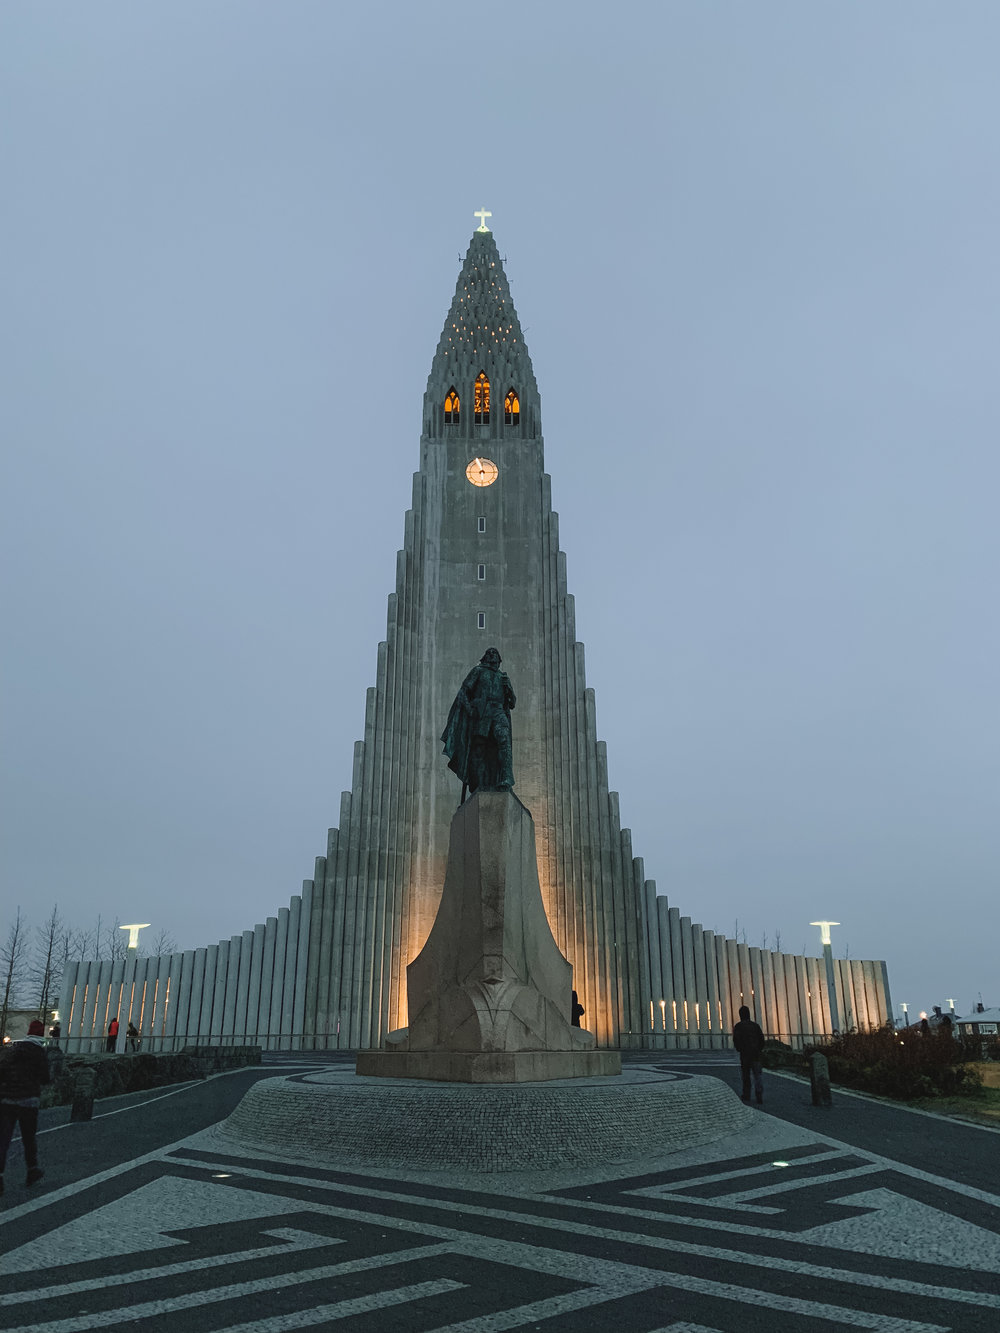 When we finally got back to Reykjavik we only had a few minutes of sunlight left so we went to the one landmark we knew about. The church is modeled to look like the basalt columns that we visited earlier in the day!